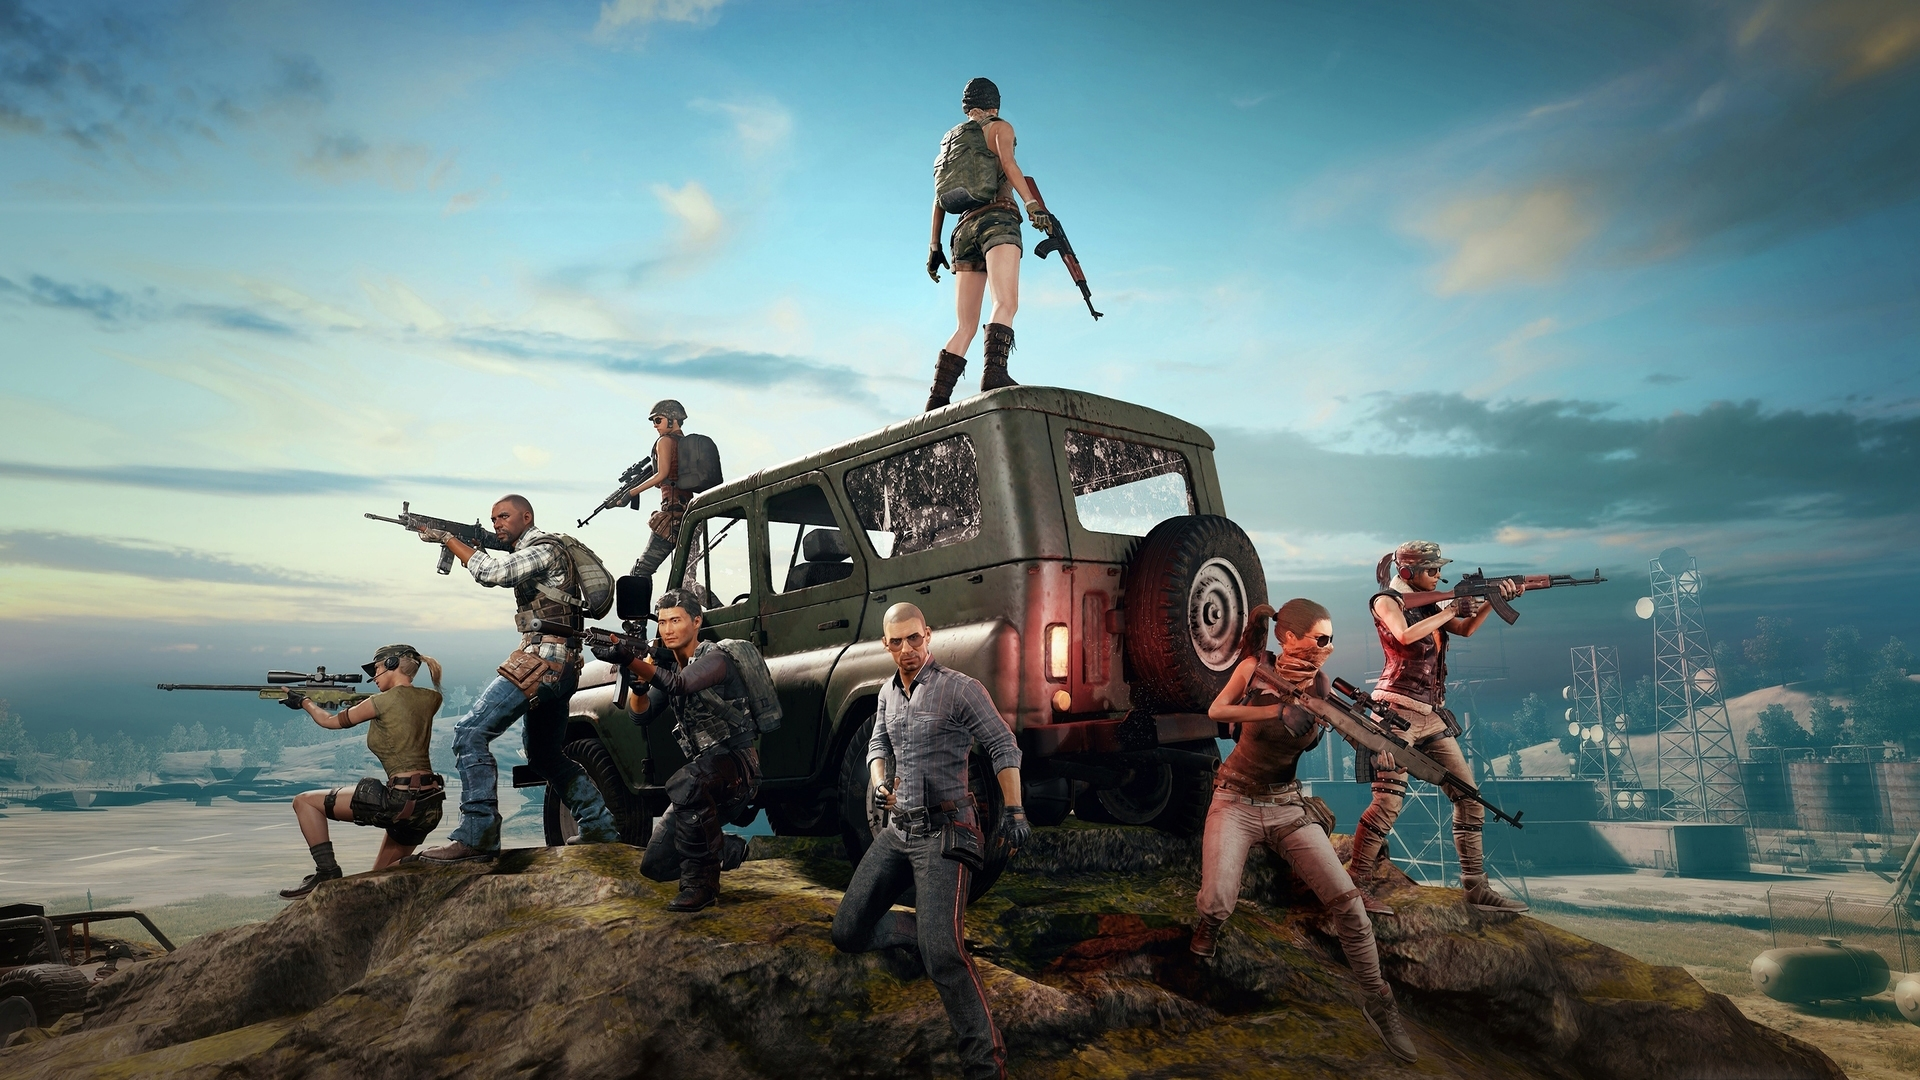 1920x1080 Pubg Characters 4k Laptop Full Hd 1080p Hd 4k: 1920x1080 2018 4k PlayerUnknowns Battlegrounds Laptop Full